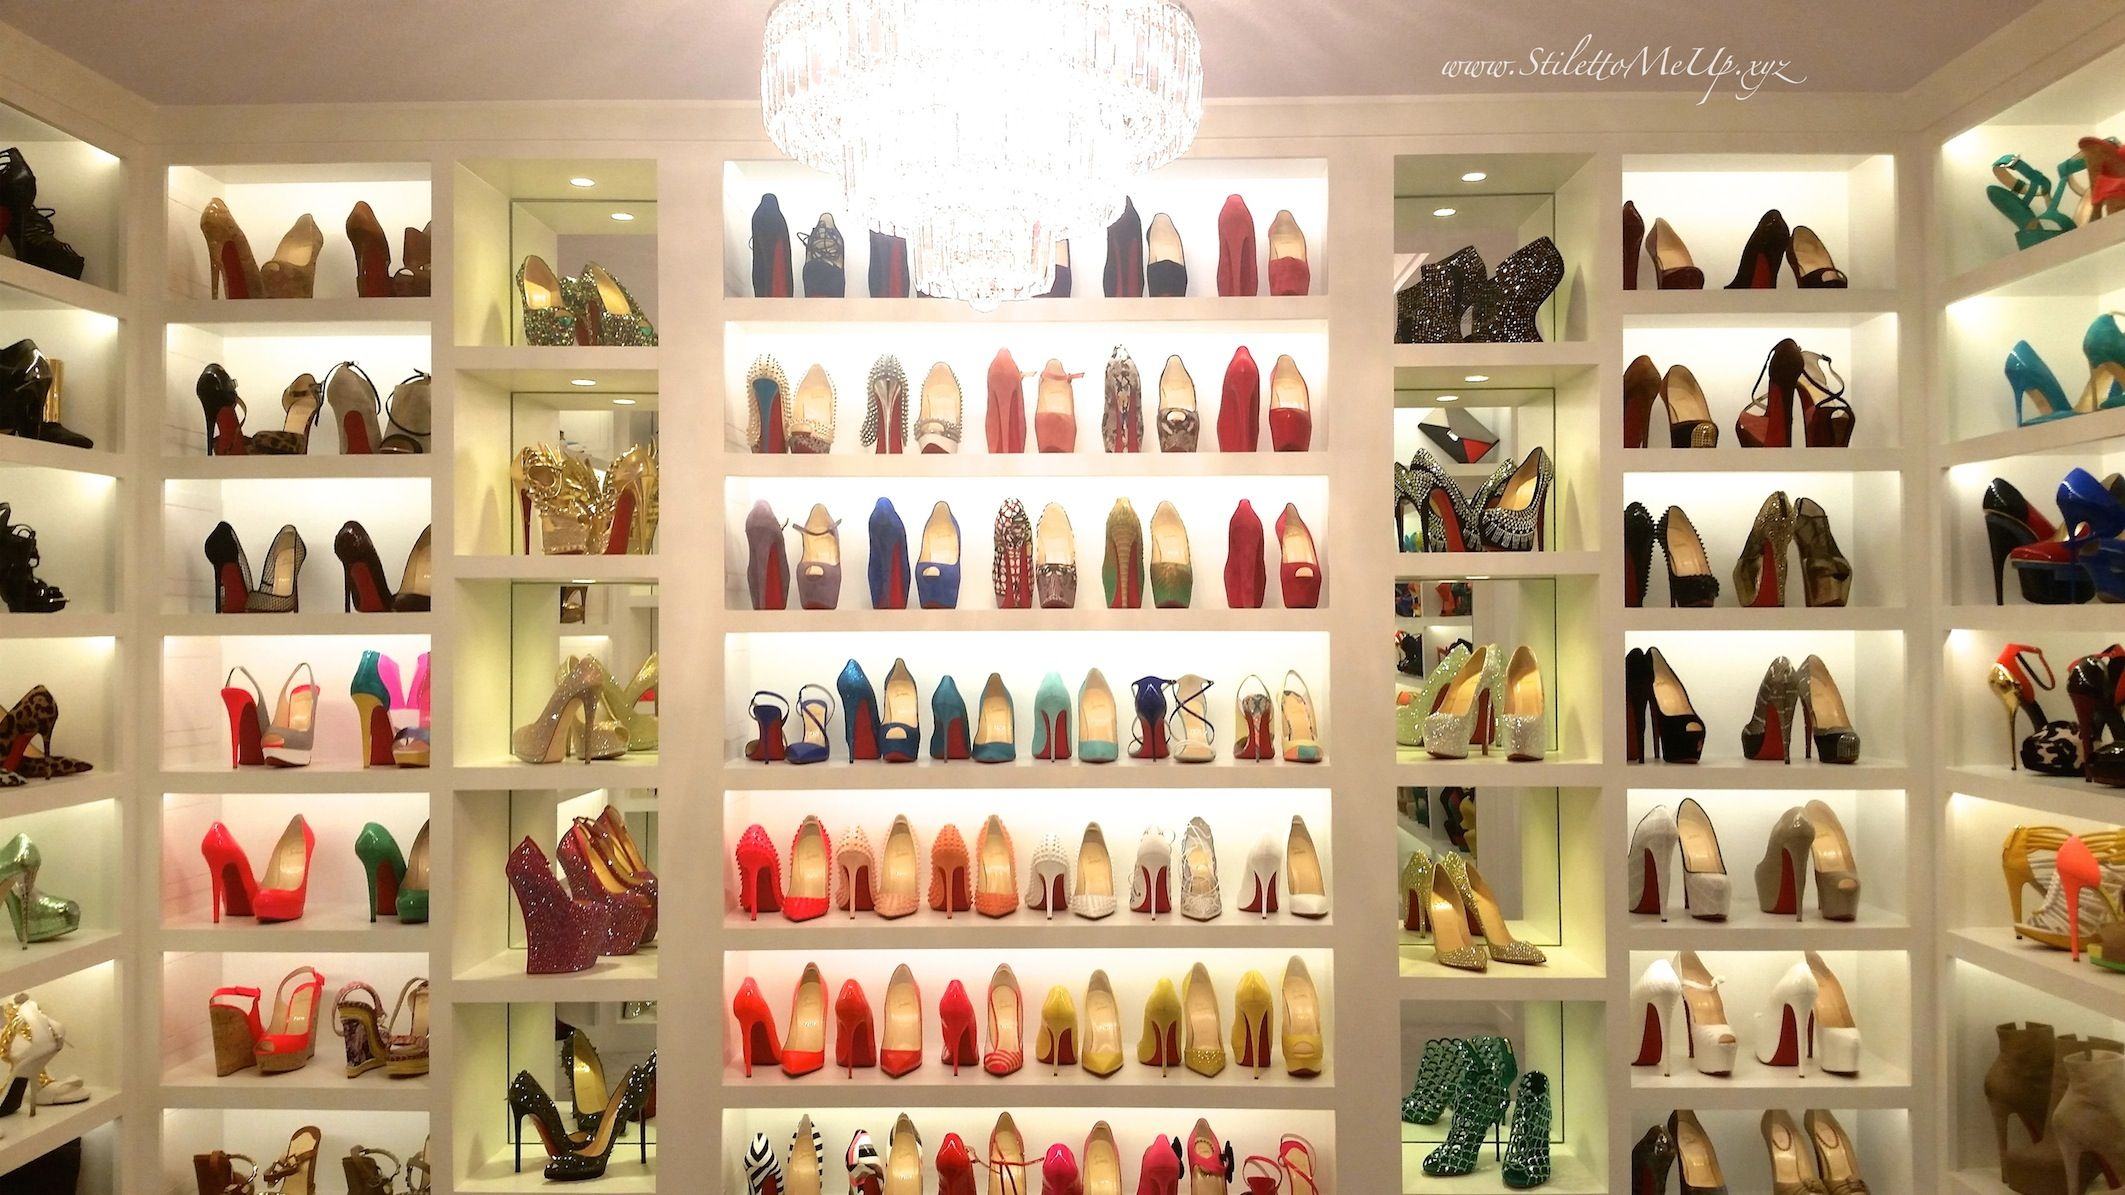 Charmant Image Result For Wall Of Louboutin Shoes